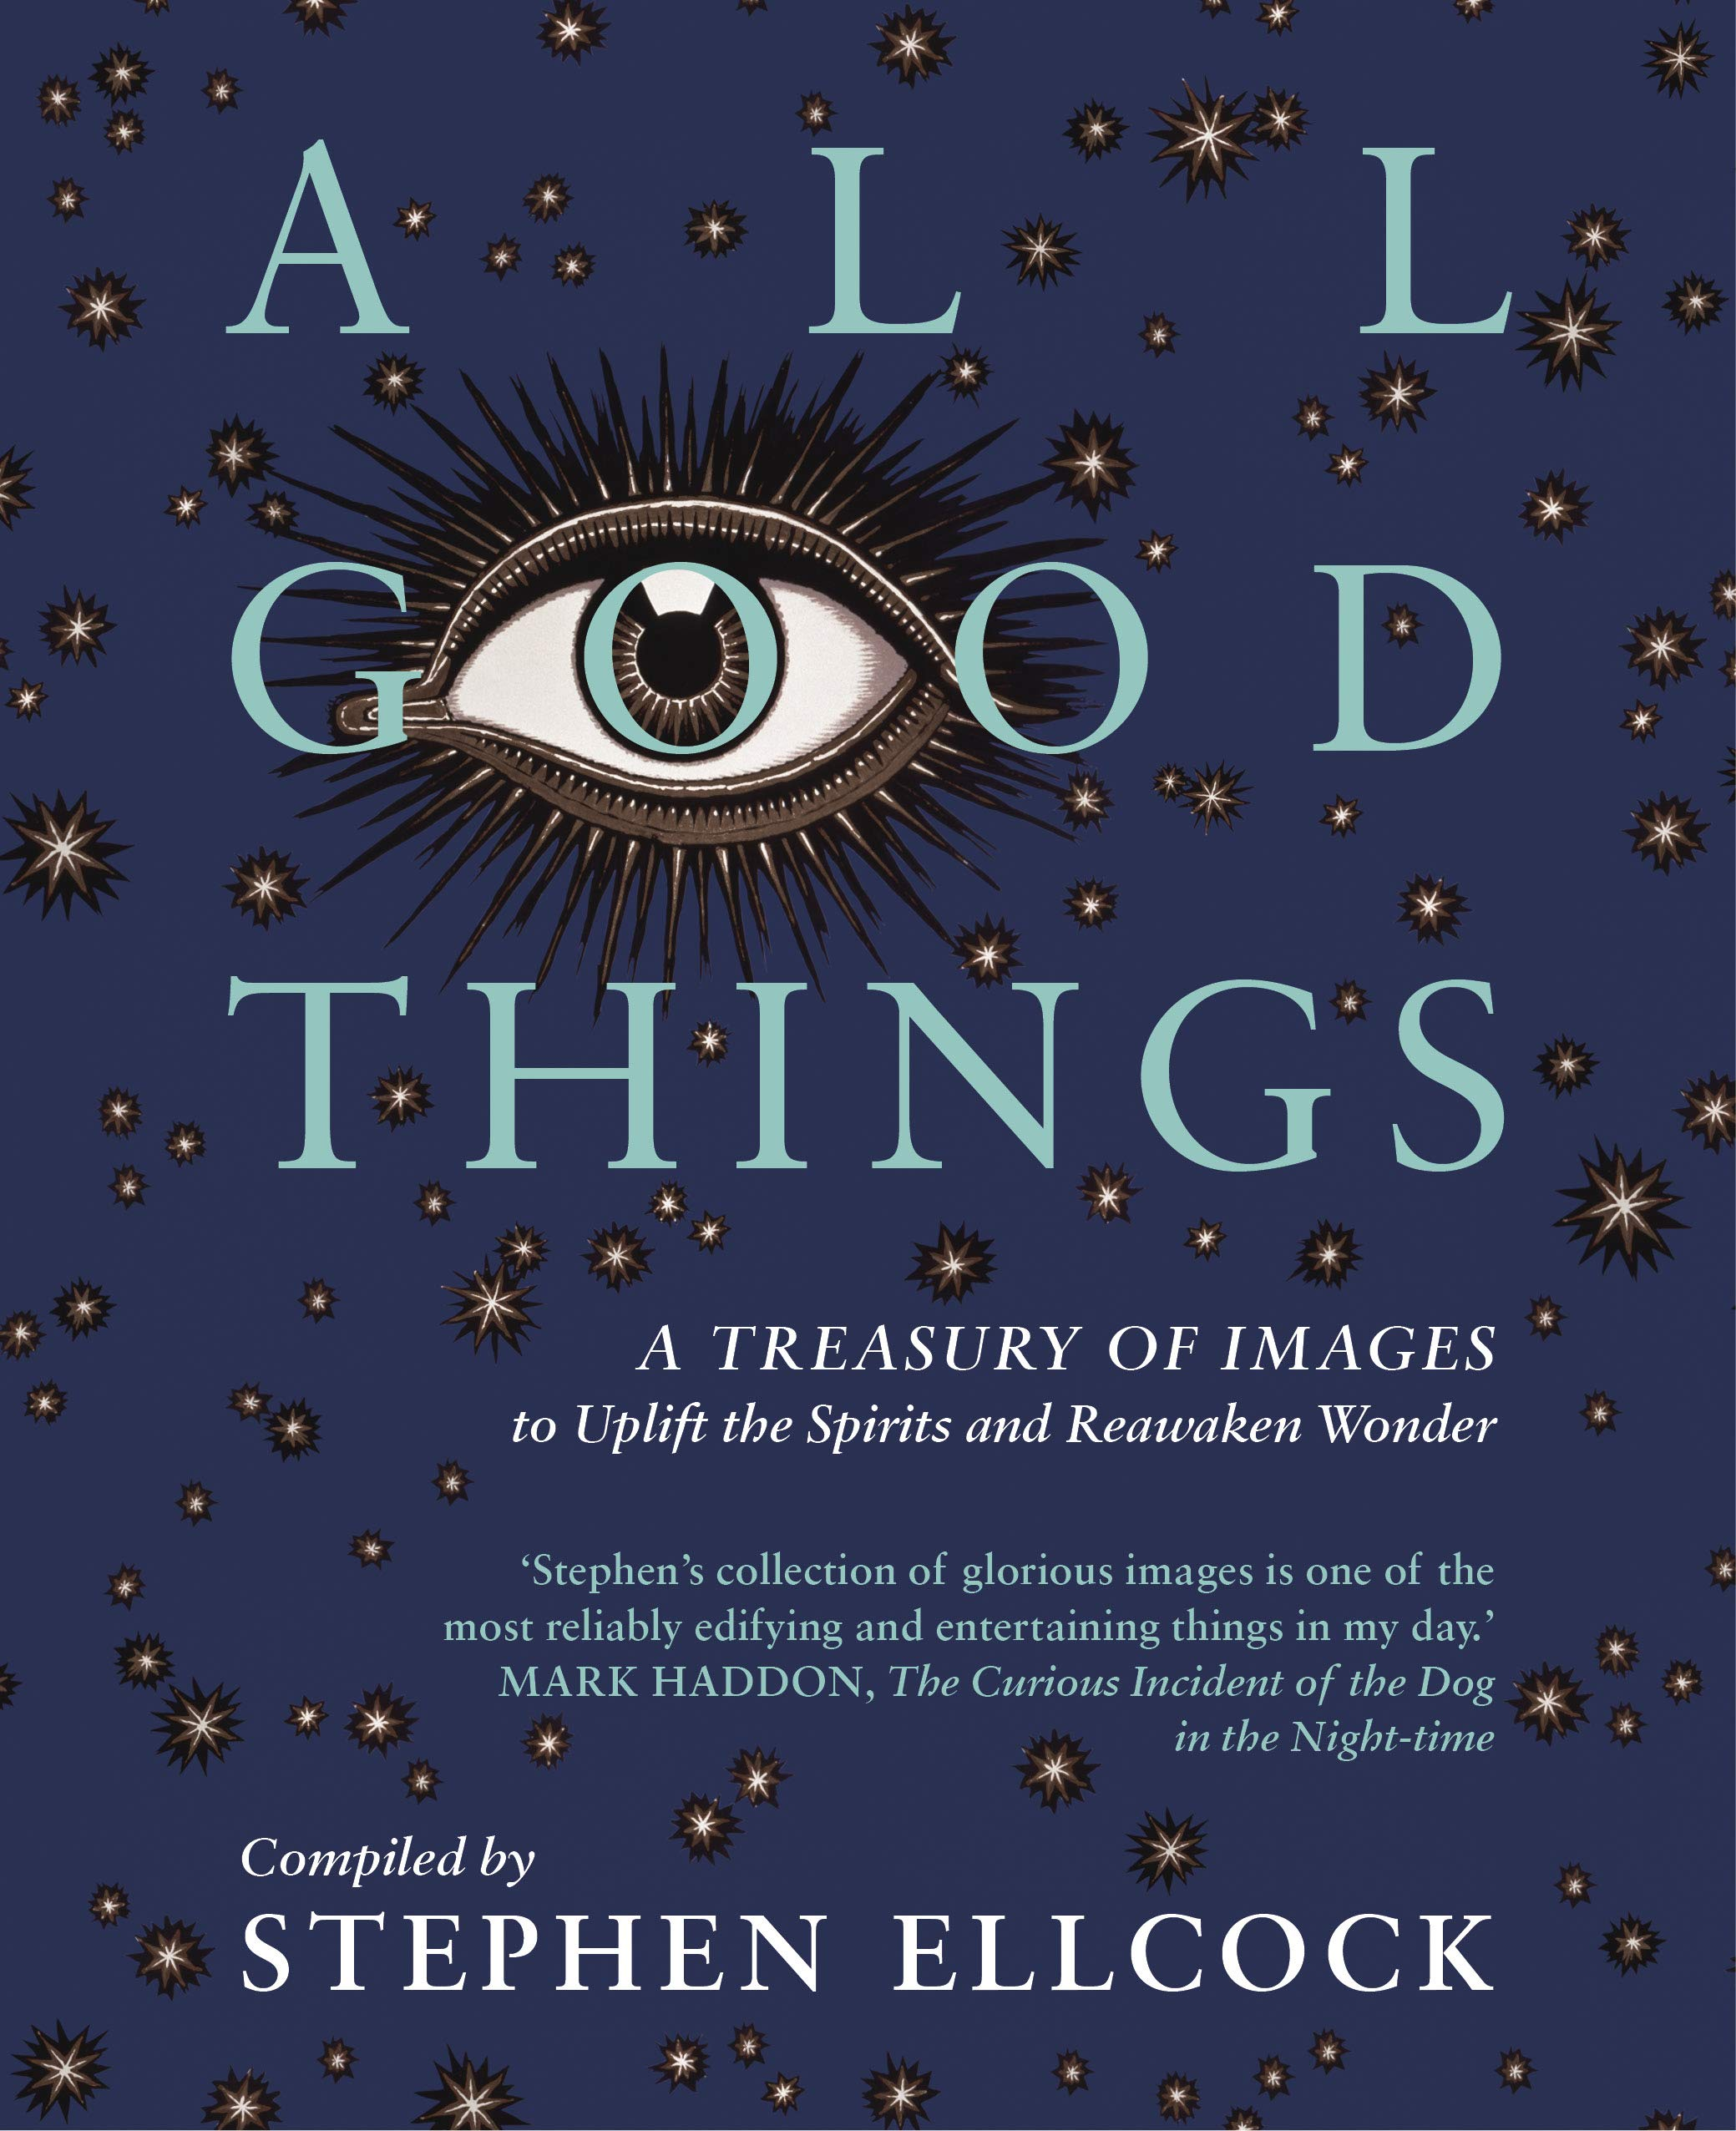 All Good Things A Treasury Of Images To Uplift The Spirits And Reawaken Wonder Ellcock Stephen 9781912836000 Amazon Com Books